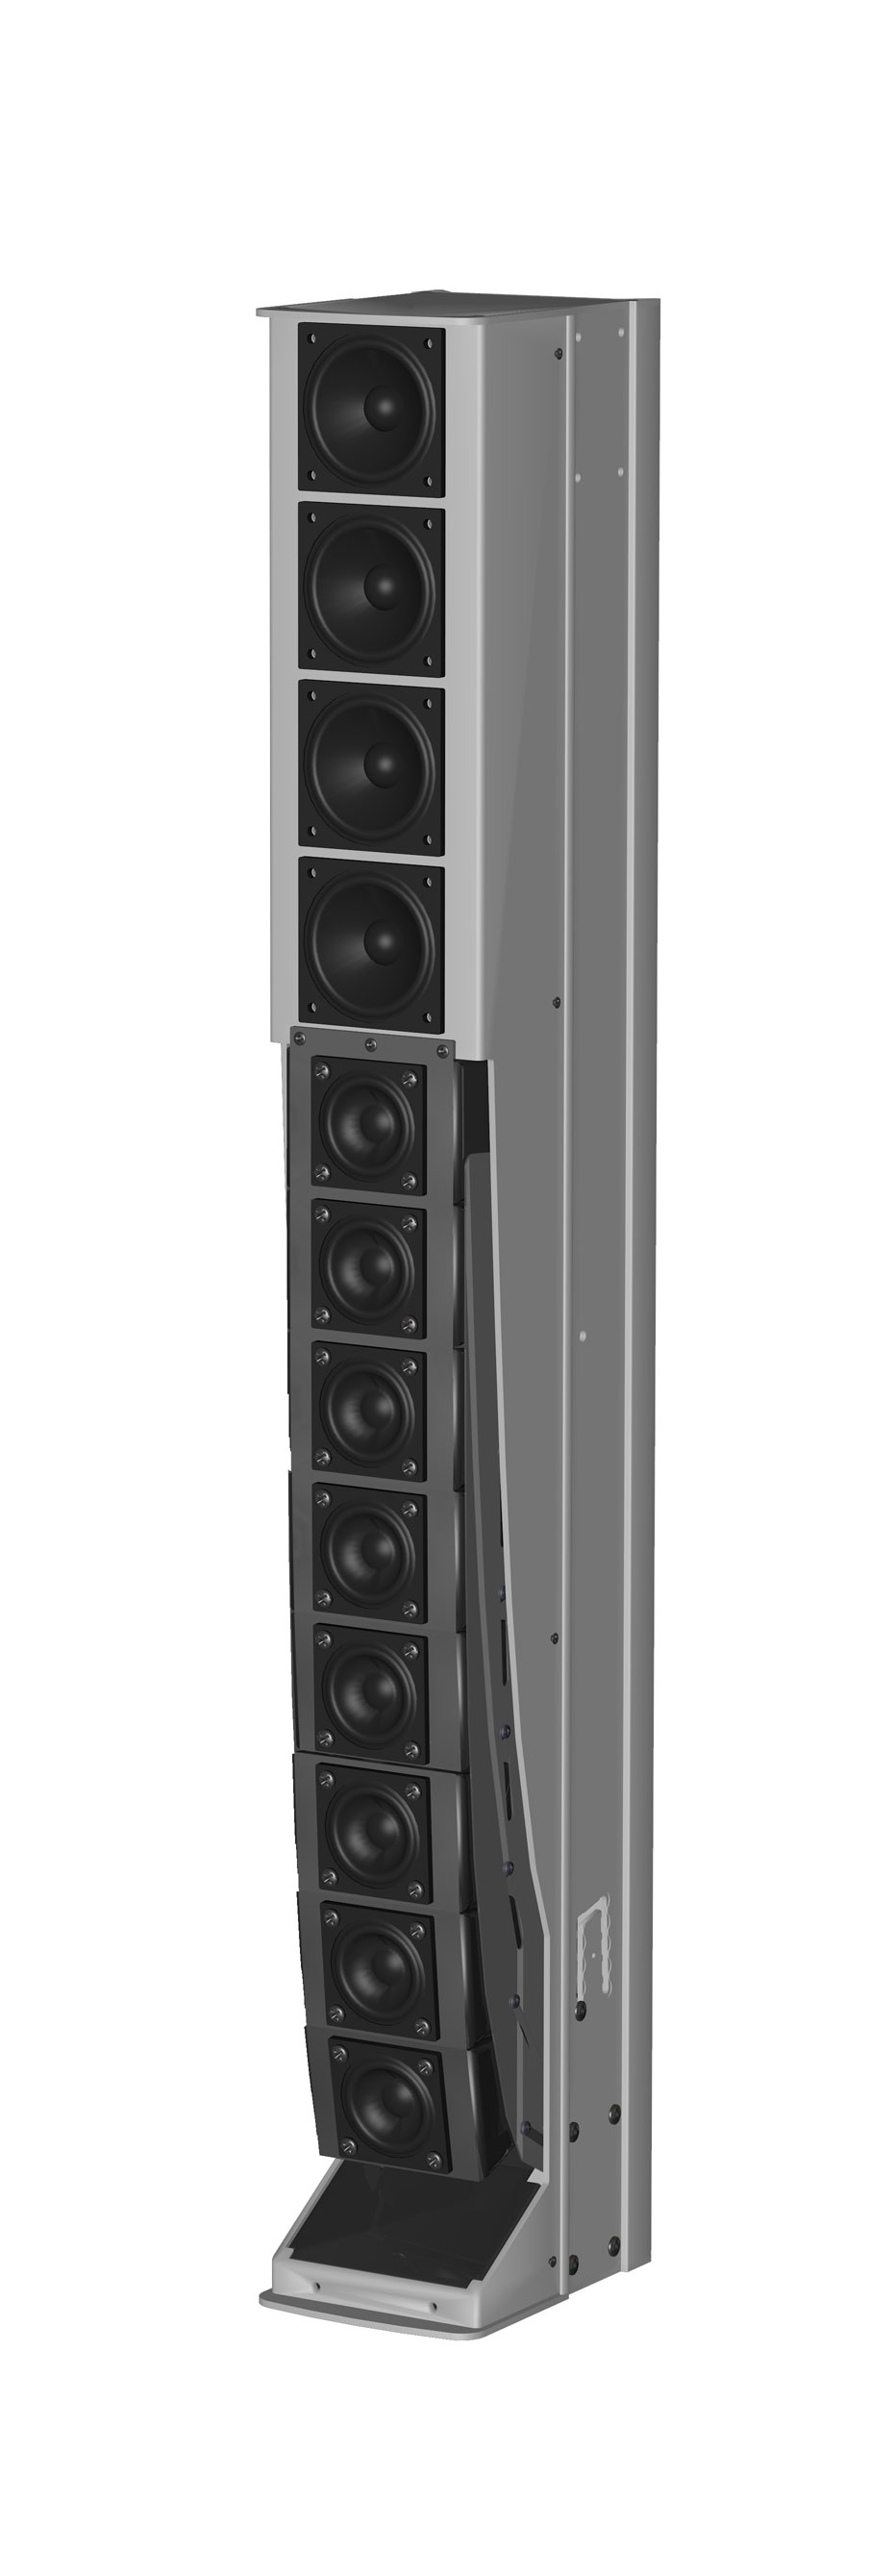 SR-MF1 Mechanically Steerable Line Array Speaker System